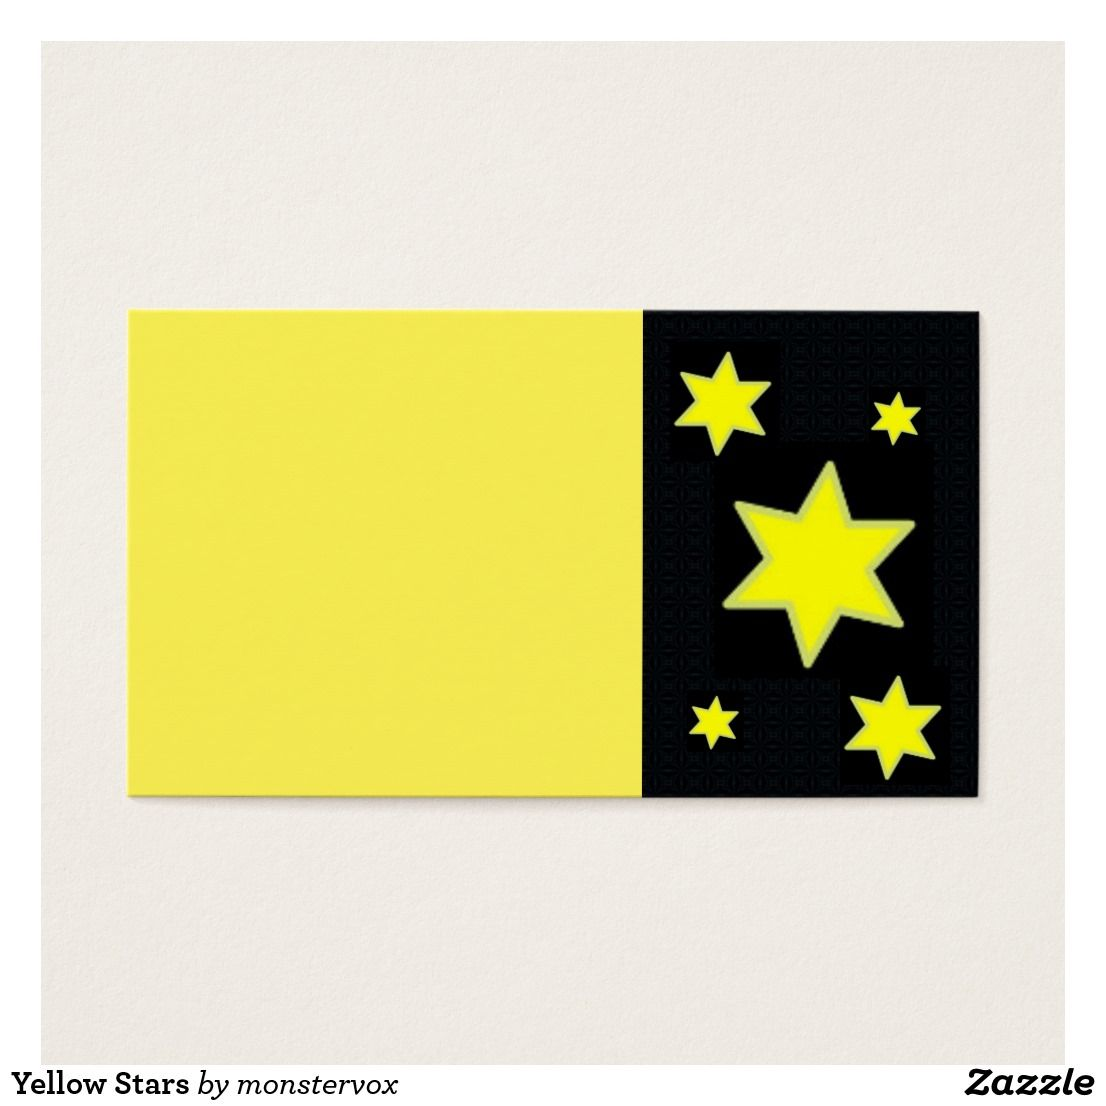 Yellow Stars Business Card   Astrology, Business cards and Business